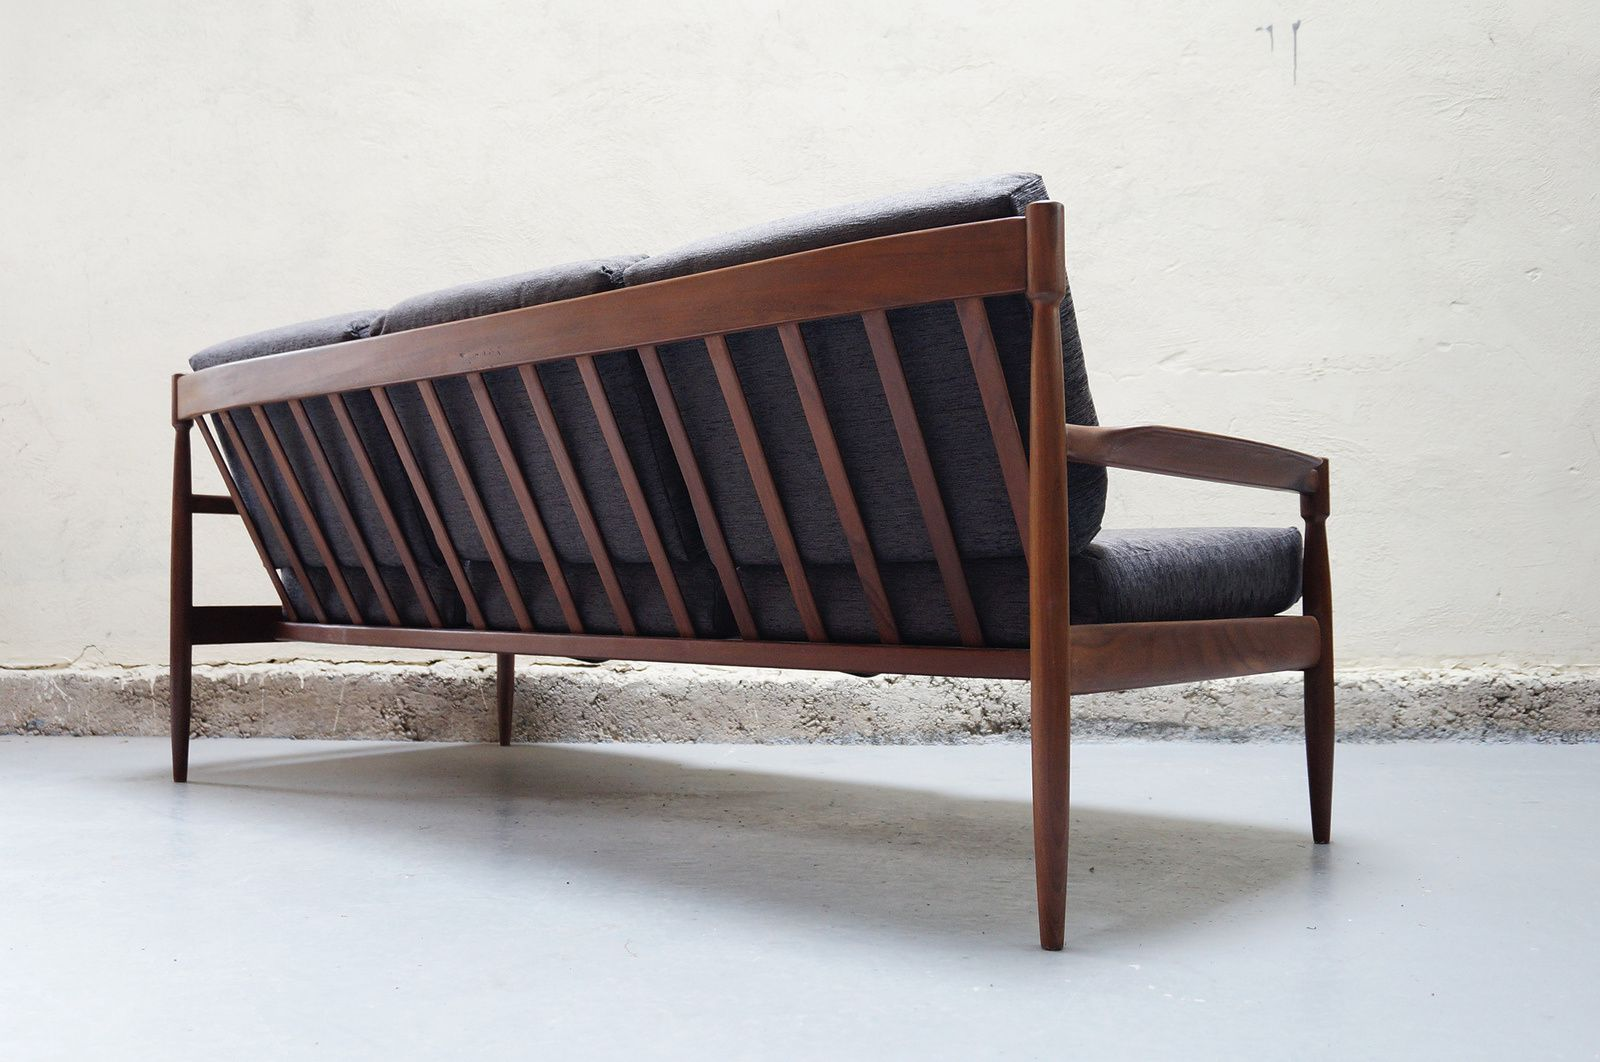 Banquette Scandinave Tanke Galerie Designer Mad Men Decoration  # Banquette En Bois Design